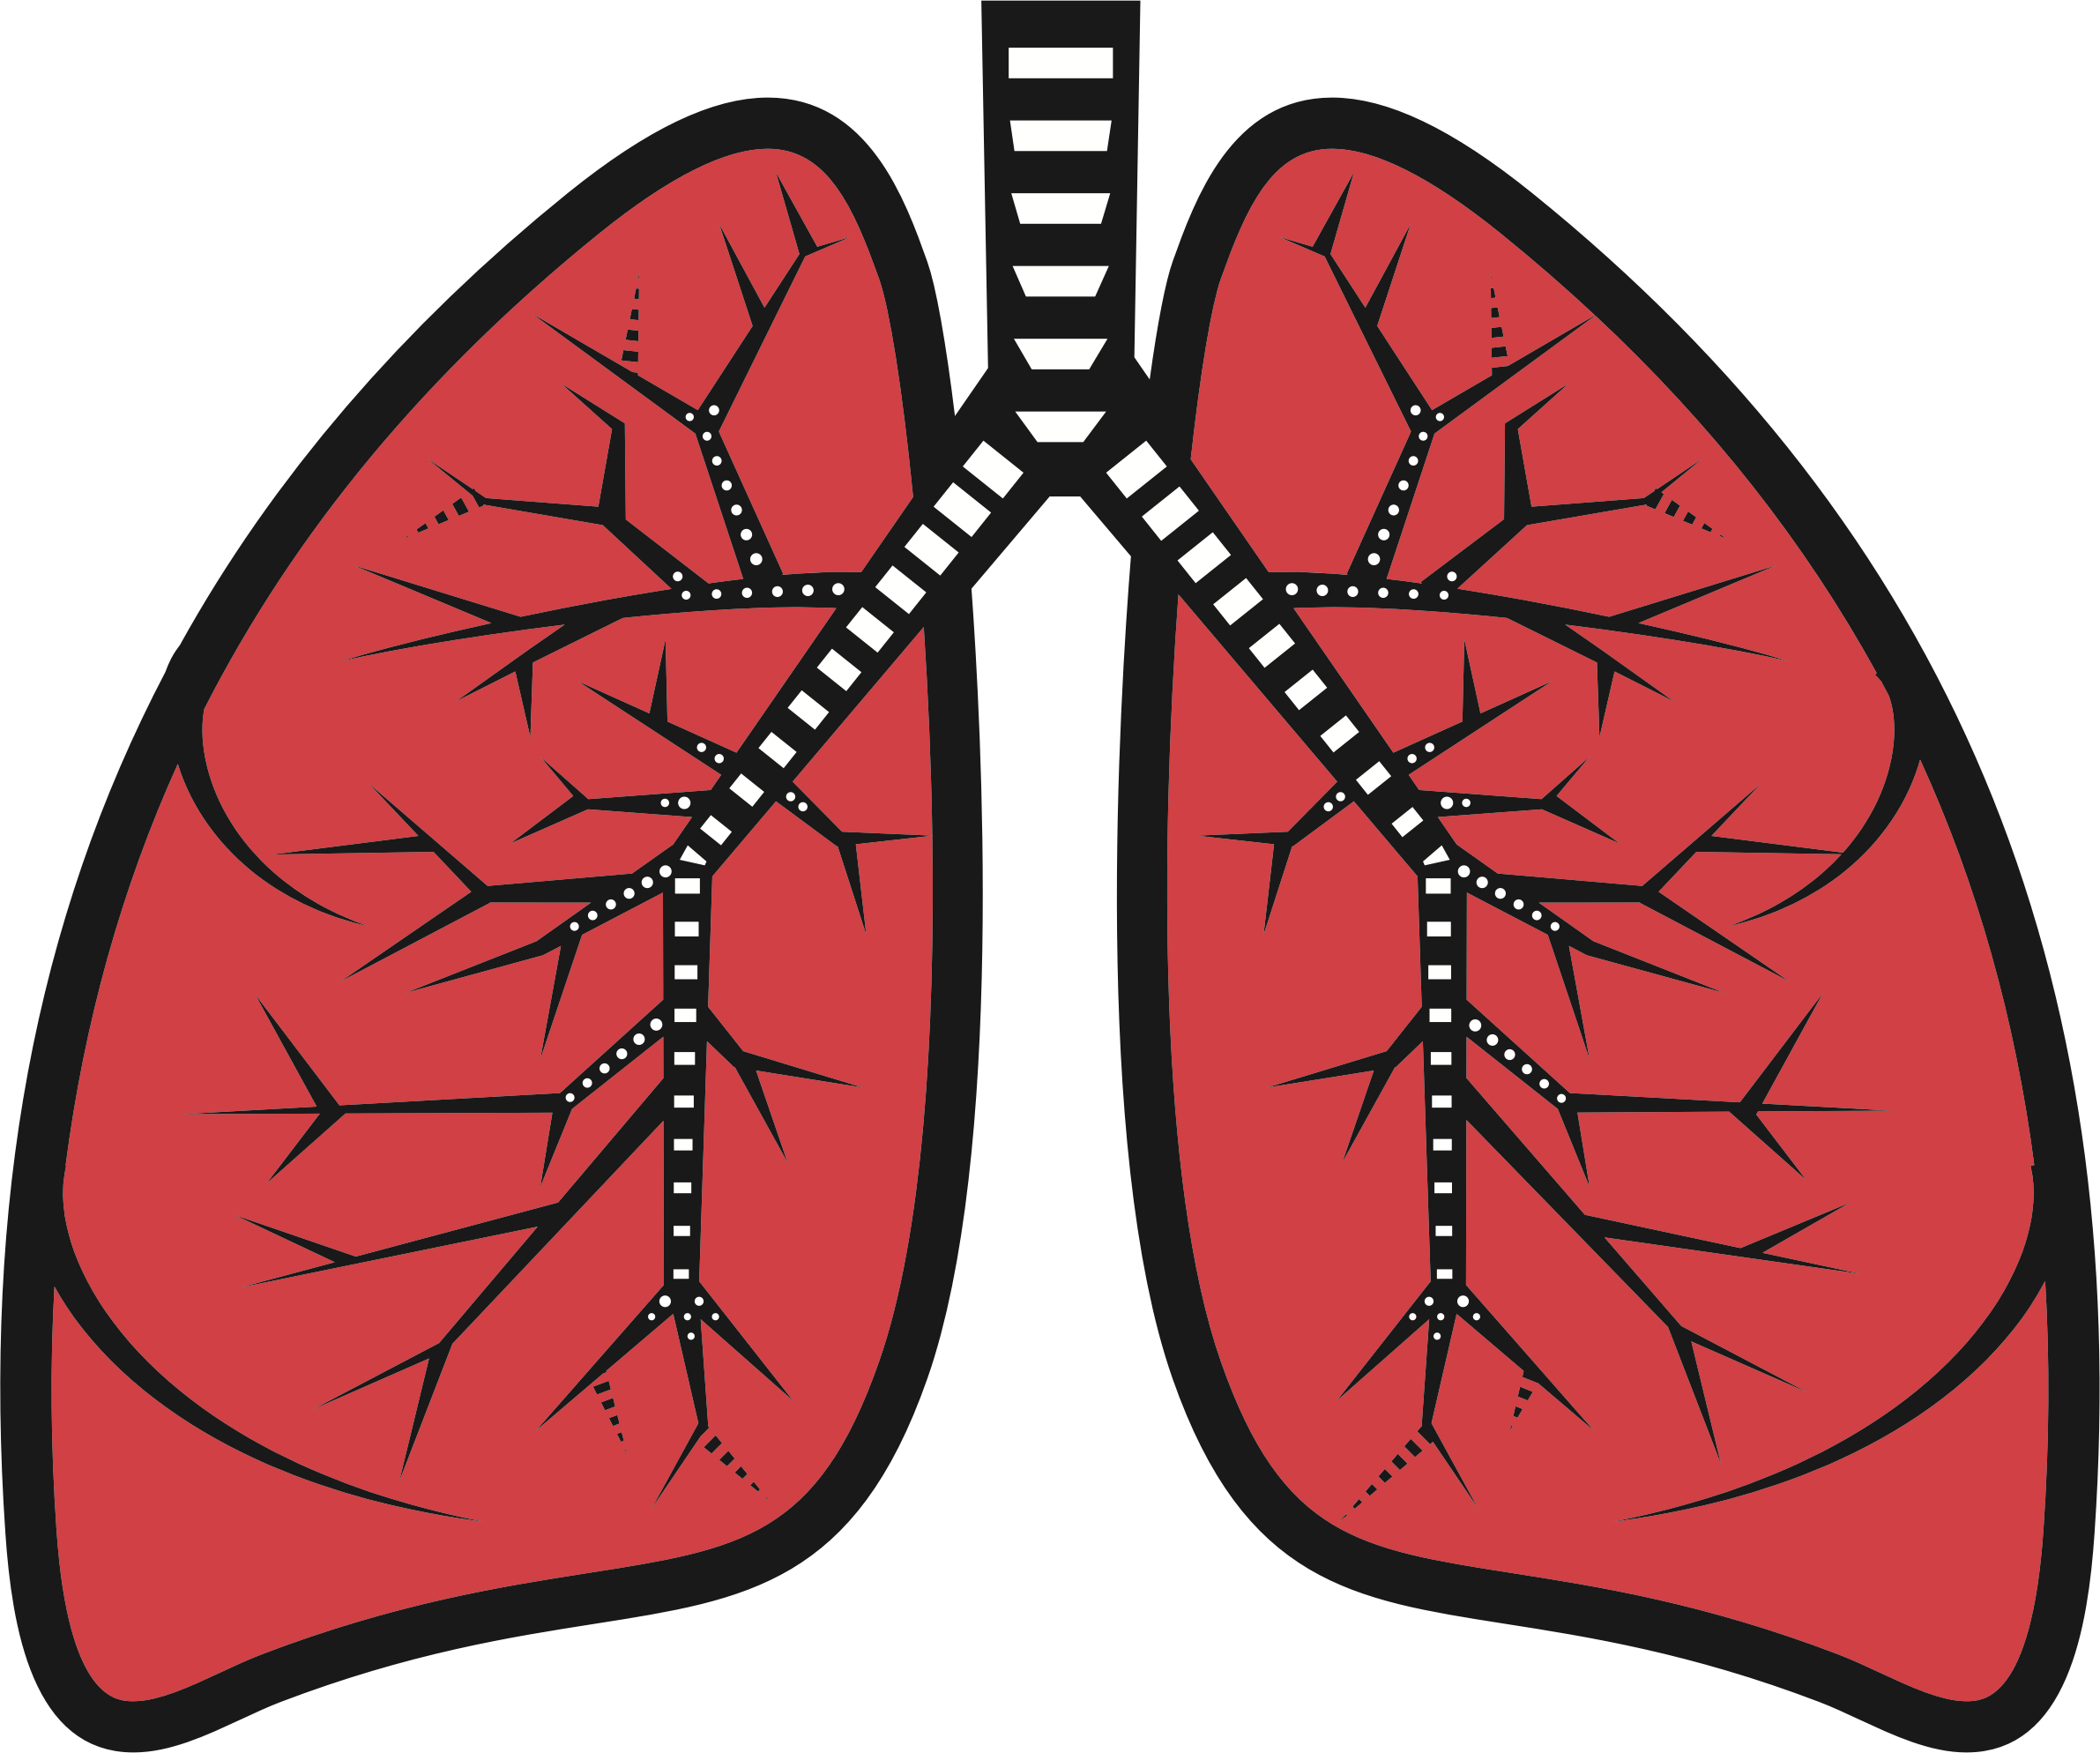 Heart surgery clipart jpg free stock Lung Clip art - lungs surgery 2382*1988 transprent Png Free Download ... jpg free stock